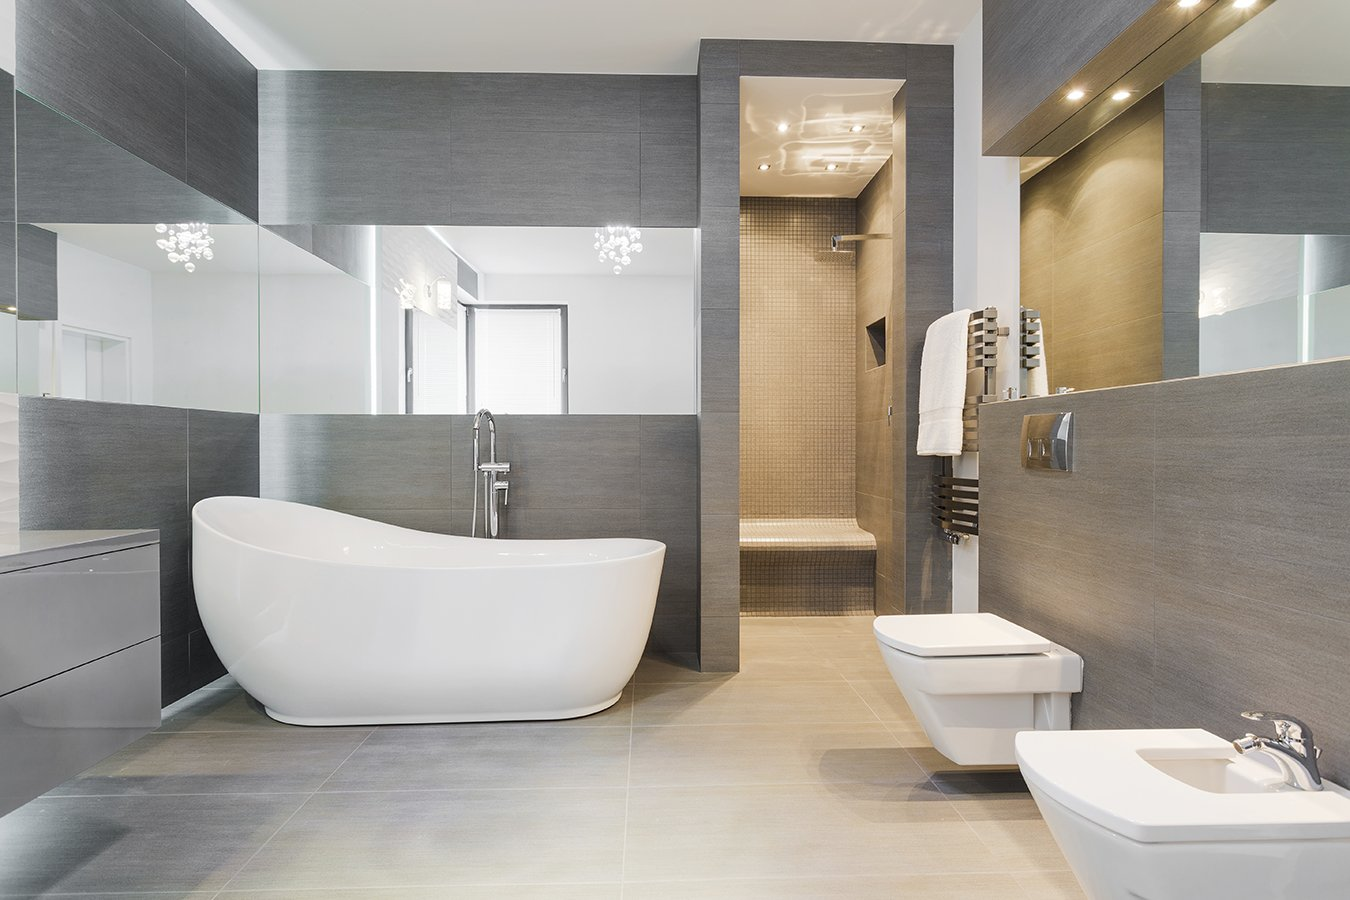 Design your home with the popular style of bathroom design